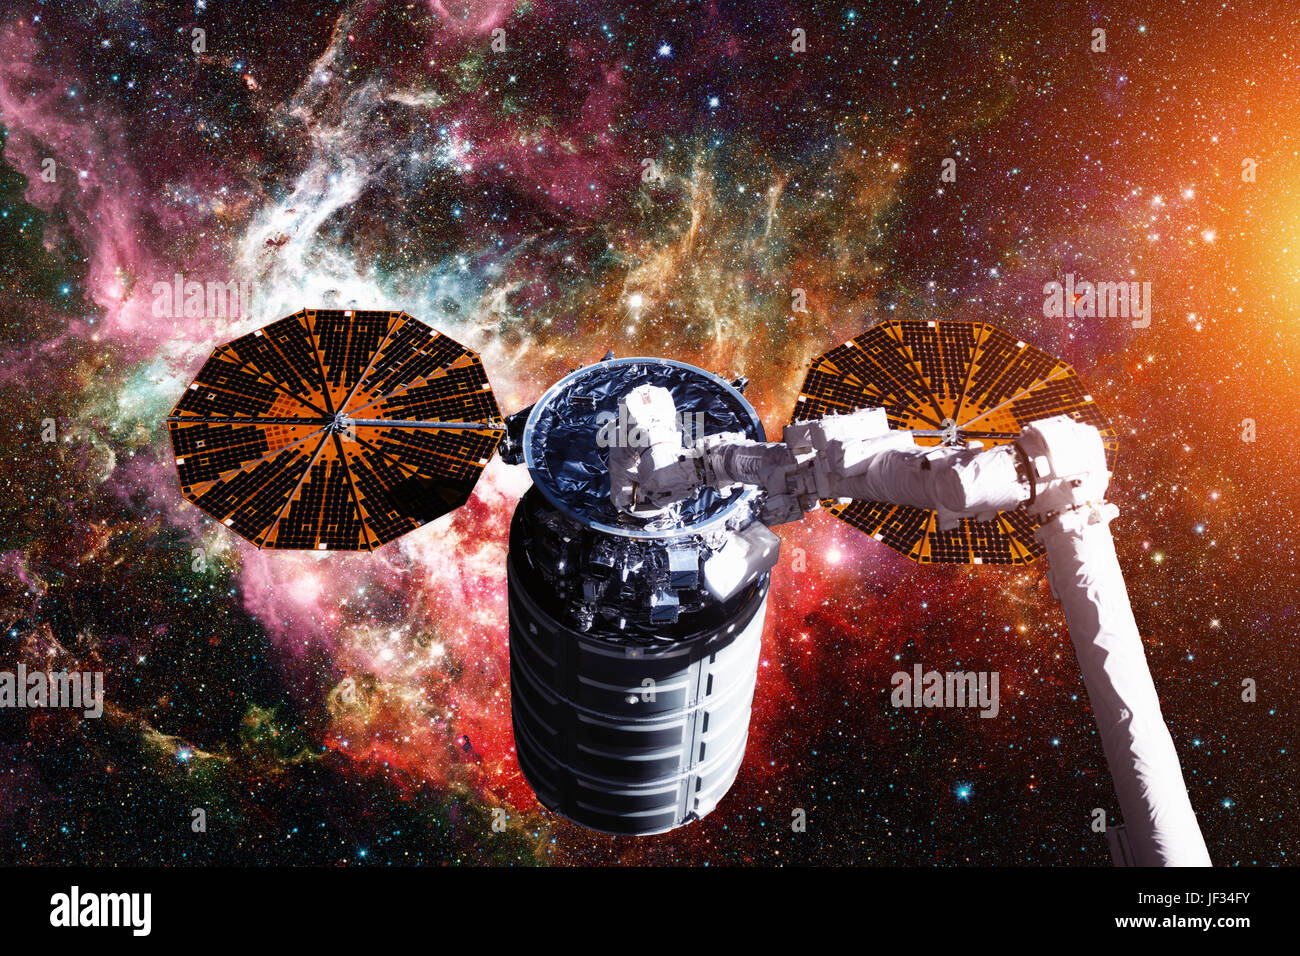 The Cygnus spacecraft in open space. Elements of this image furnished by NASA. - Stock Image